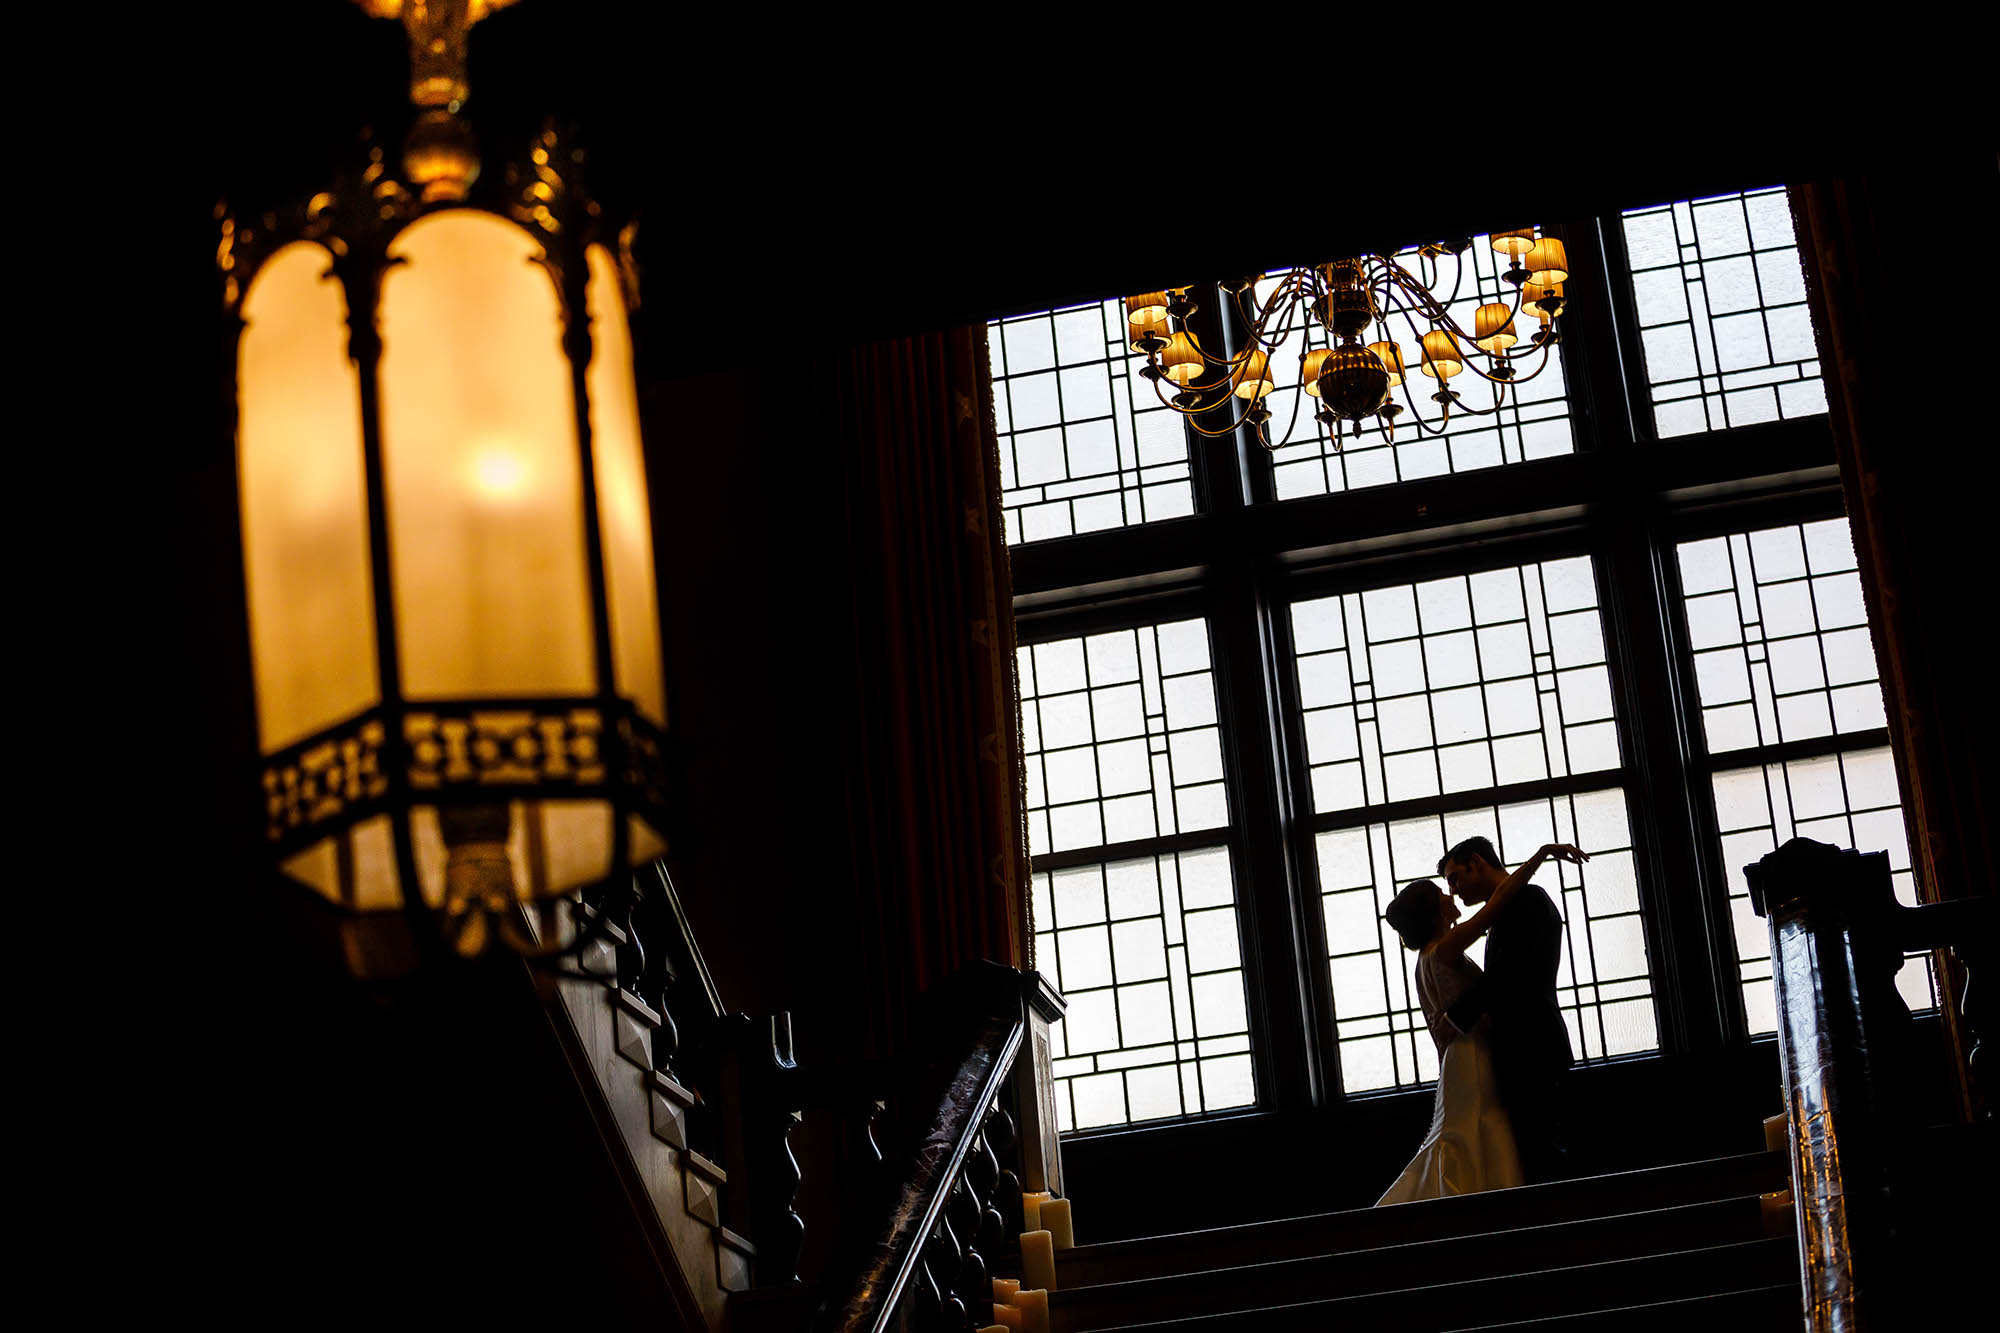 The grand staircase of The Union Club is an amazing photo location with the large windows and chandeliers.